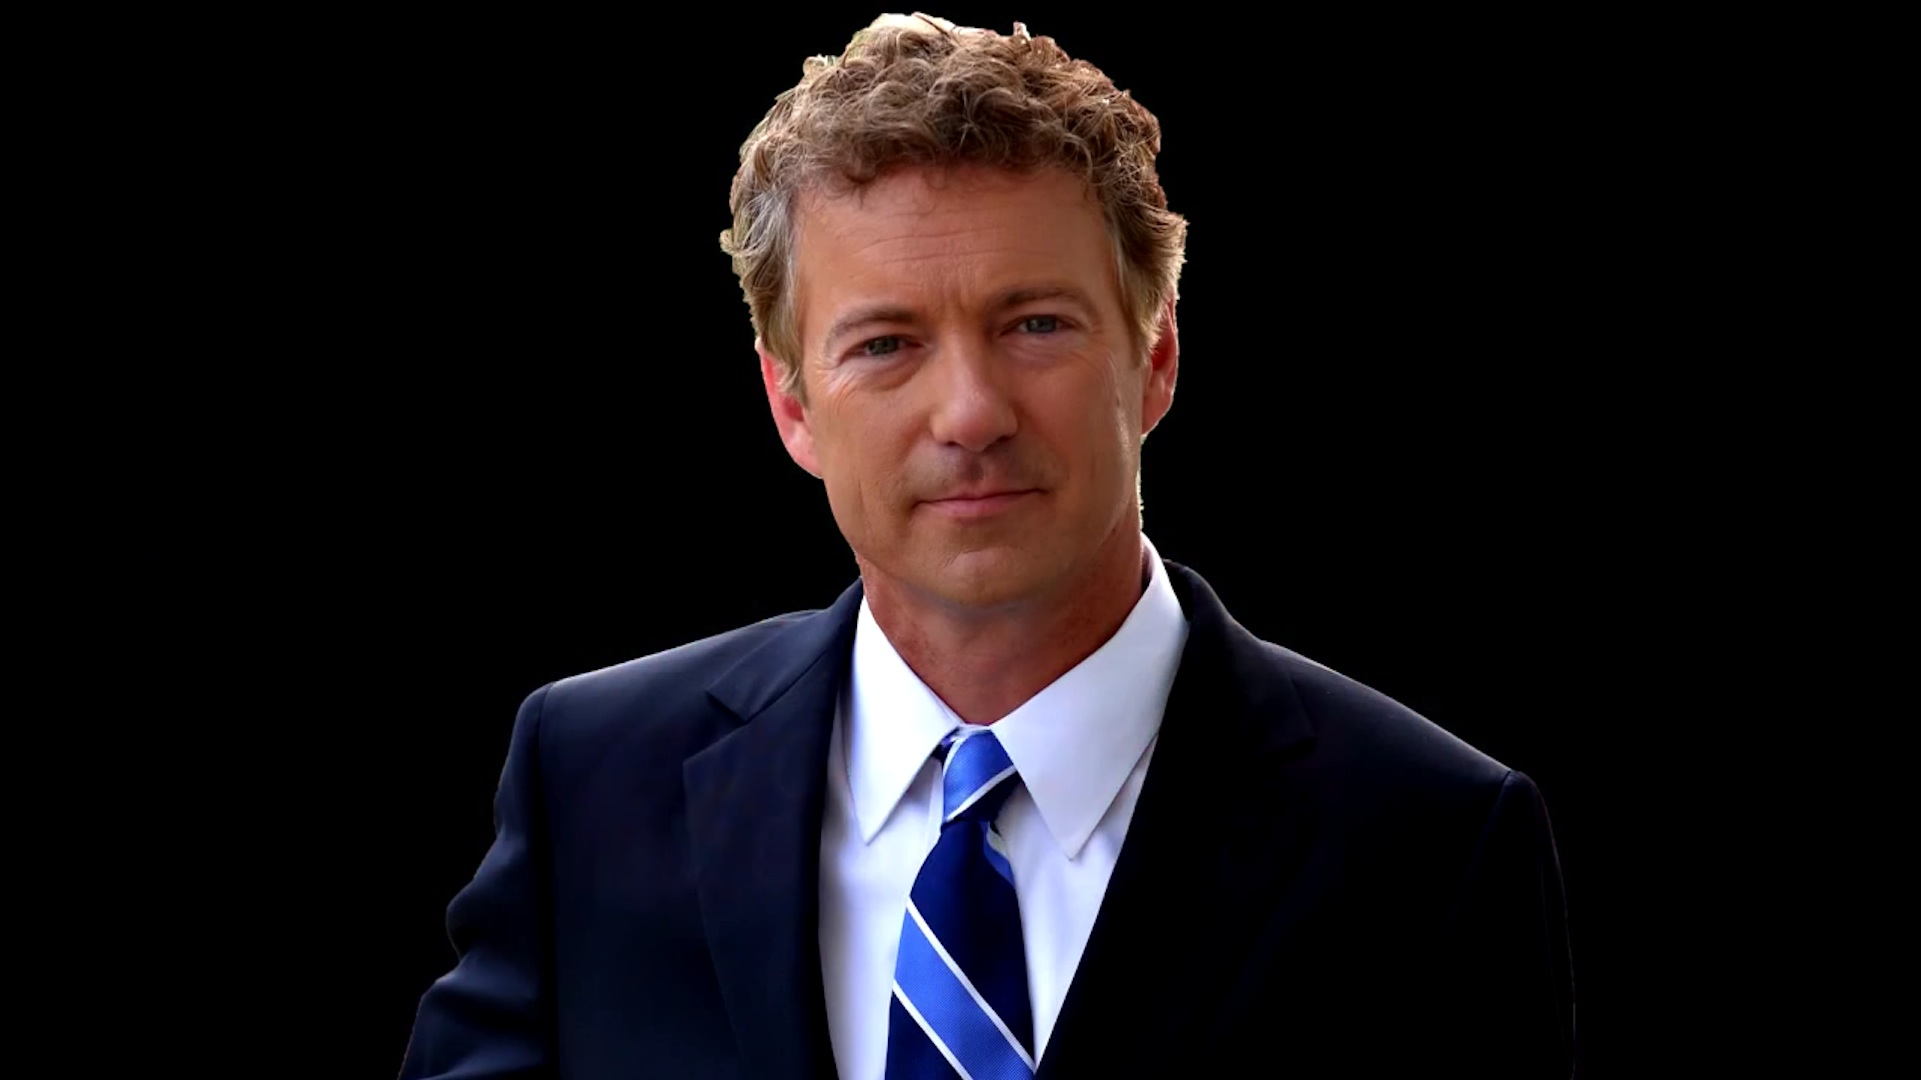 Rand Paul launches 2016 White House bid: 'We have come to take our country back'